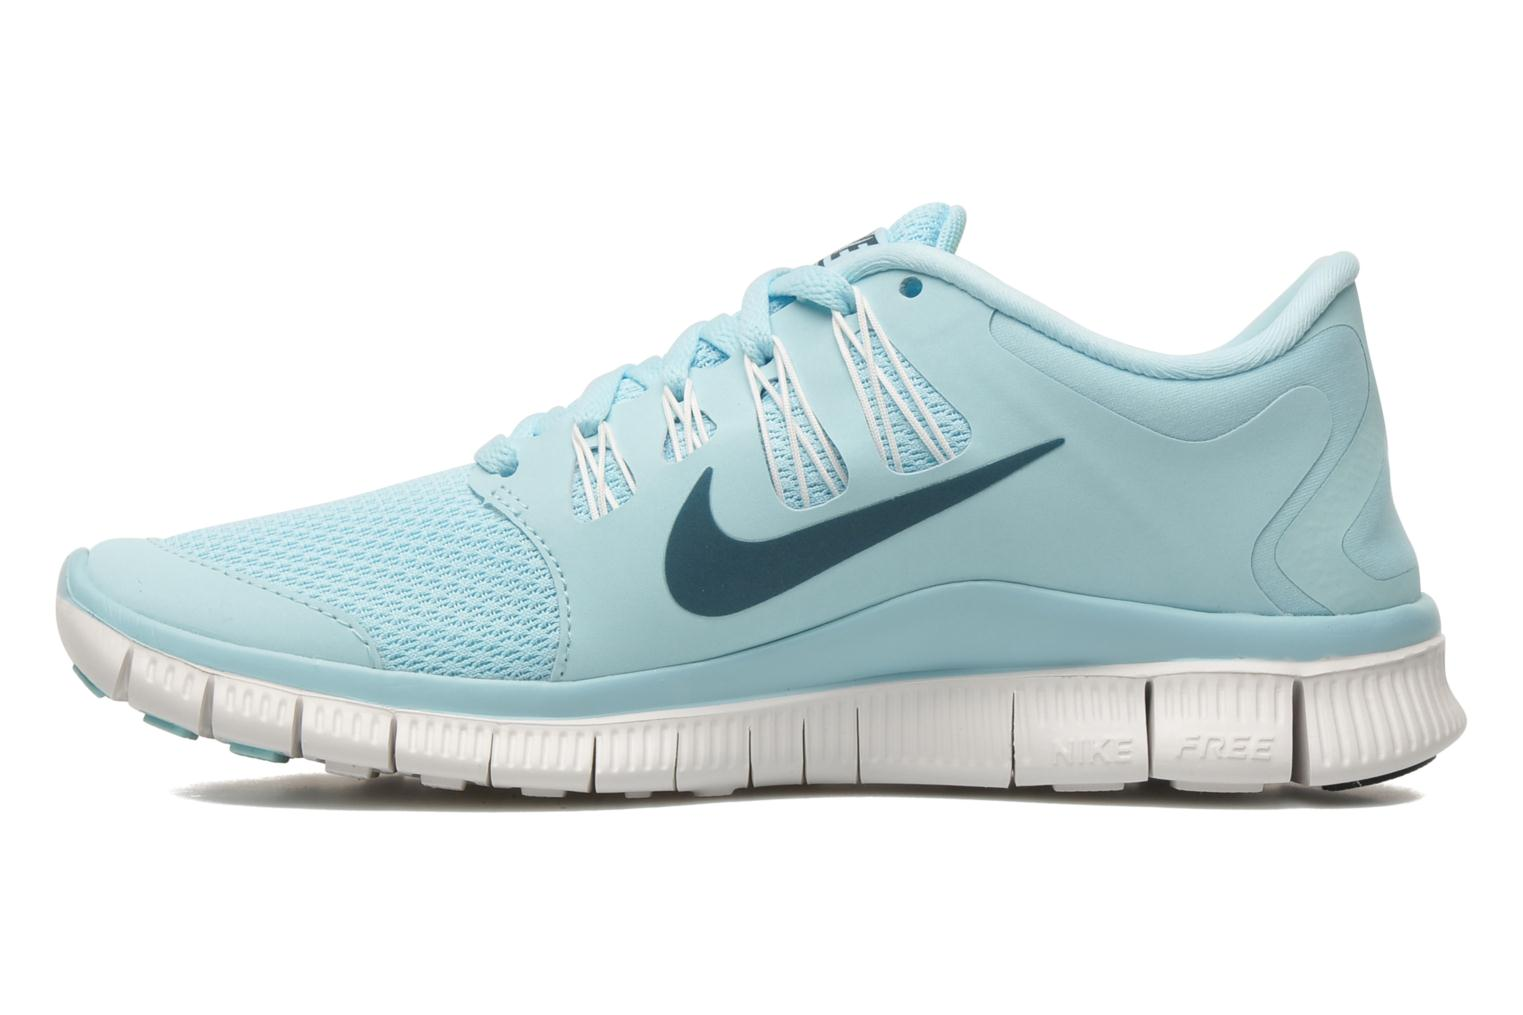 Wmns Nike Free 5.0+ Glacier Ice/Nght Fctr-Smmt Wht